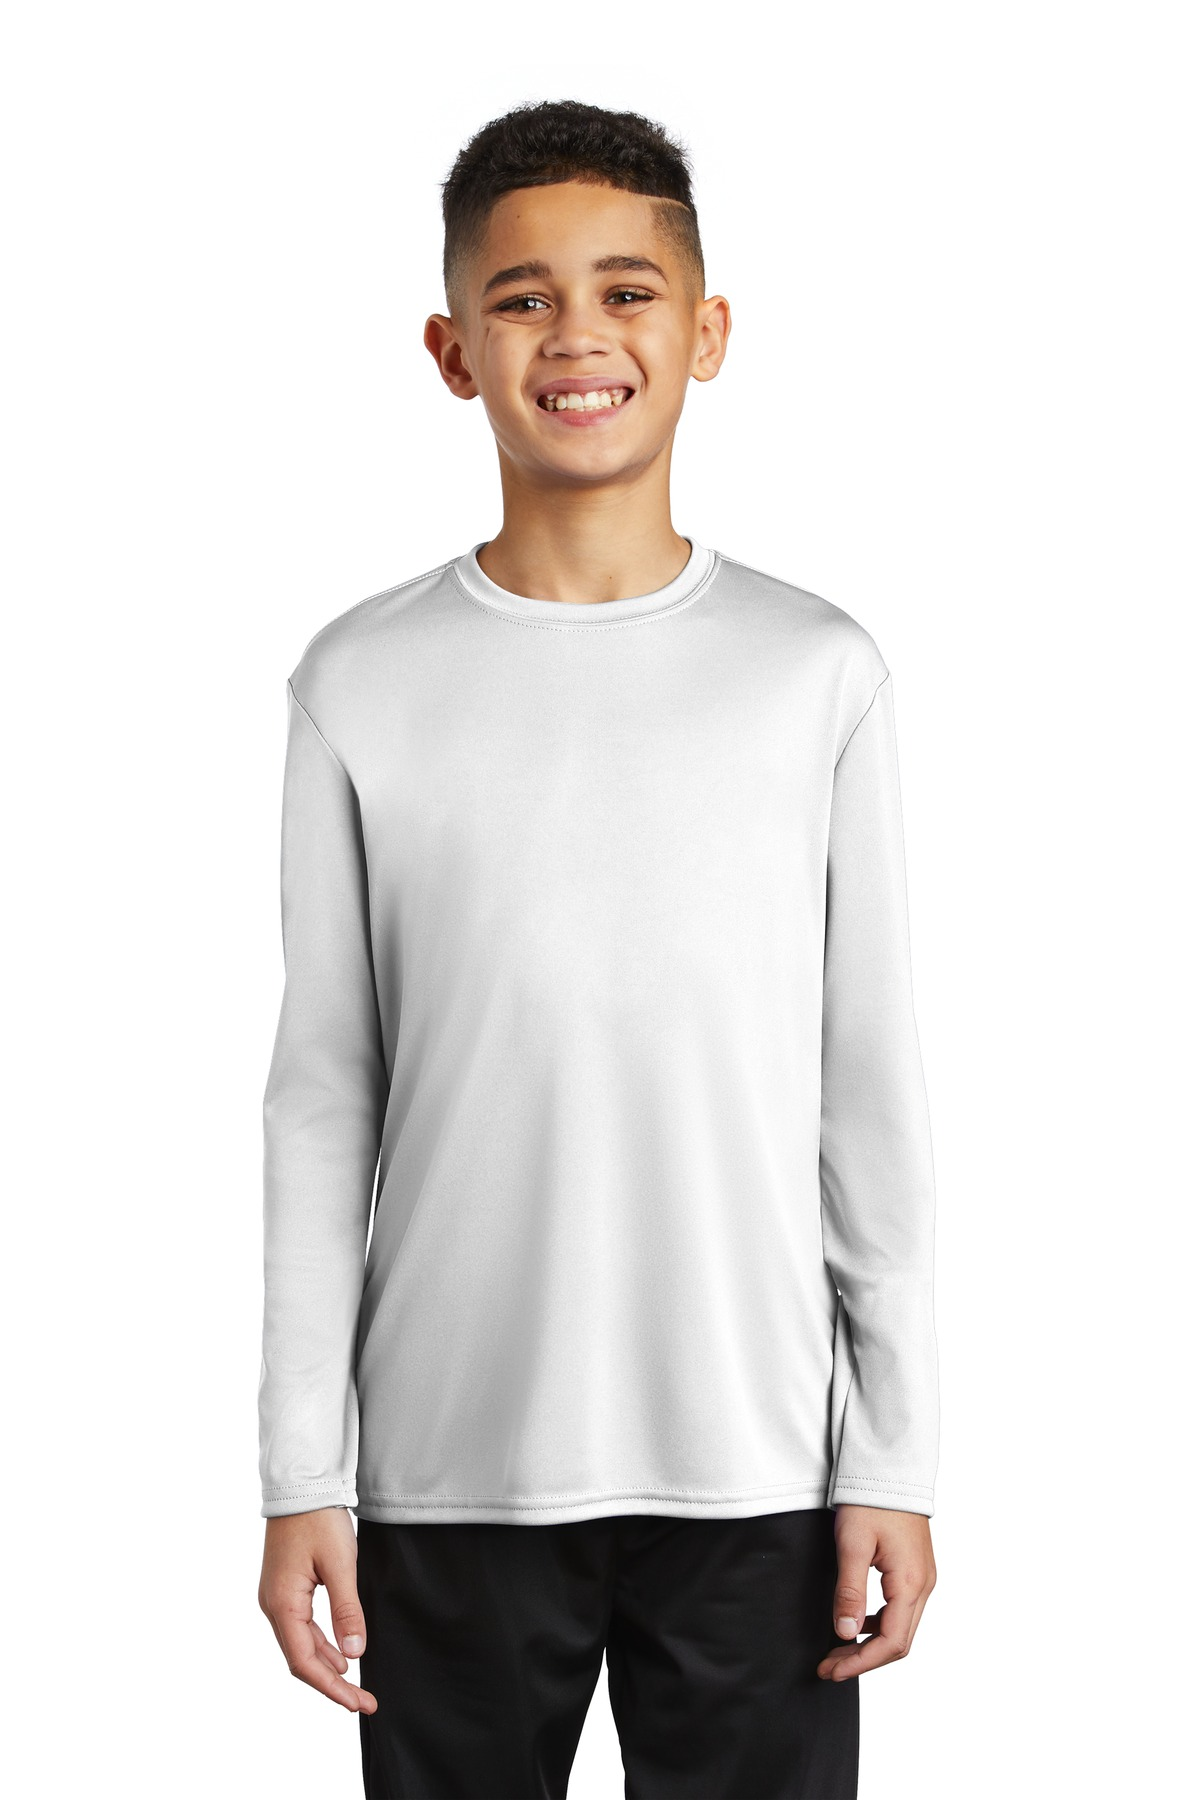 Port & Company  ®  Youth Long Sleeve Performance Tee PC380YLS - White